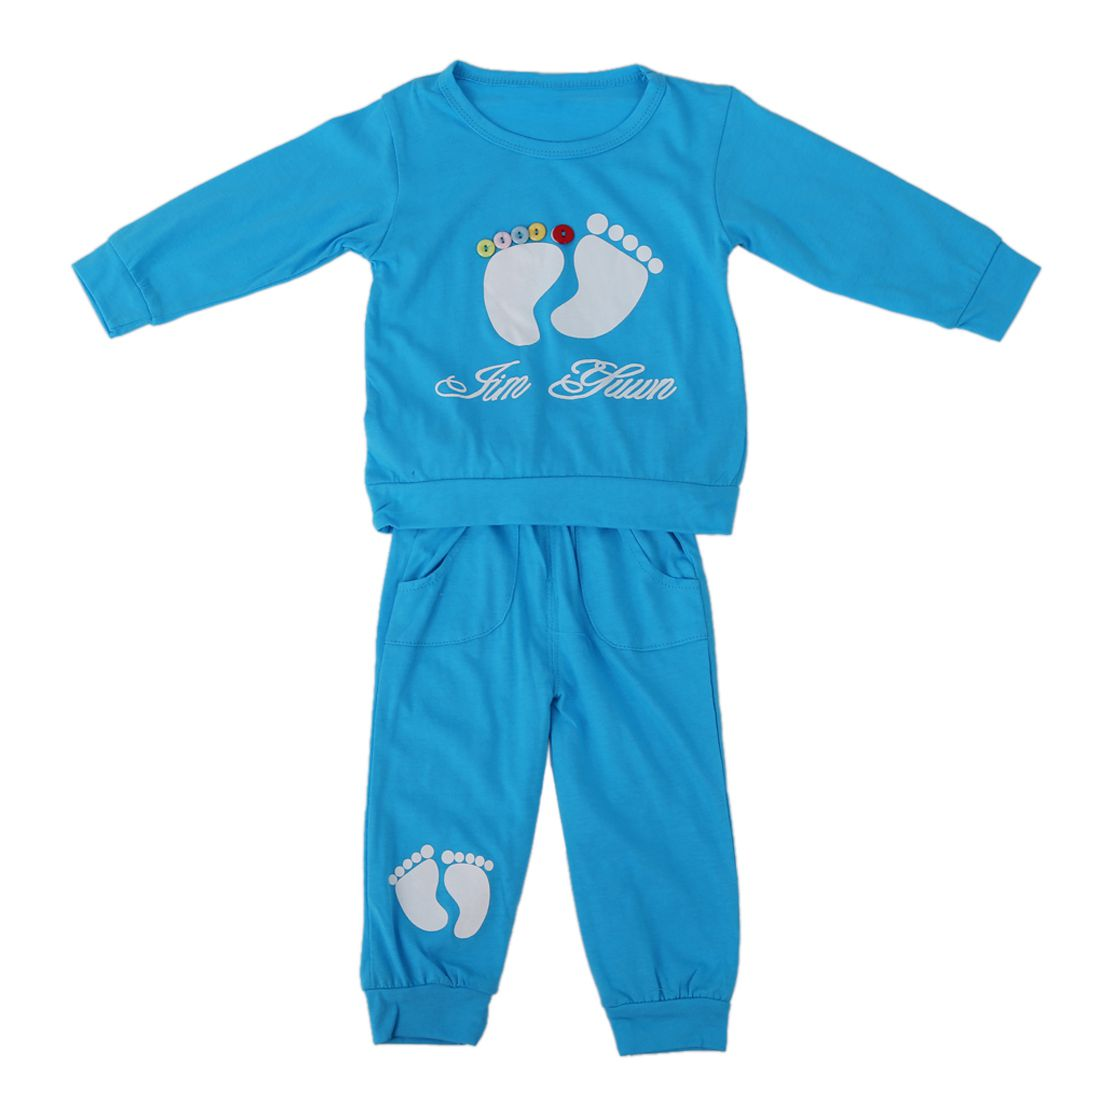 ABWE Best Sale High Quality 100% Cotton baby clothing set,Toddlers children set,baby boys girls 2 pcs Footprints BLUE GREEN